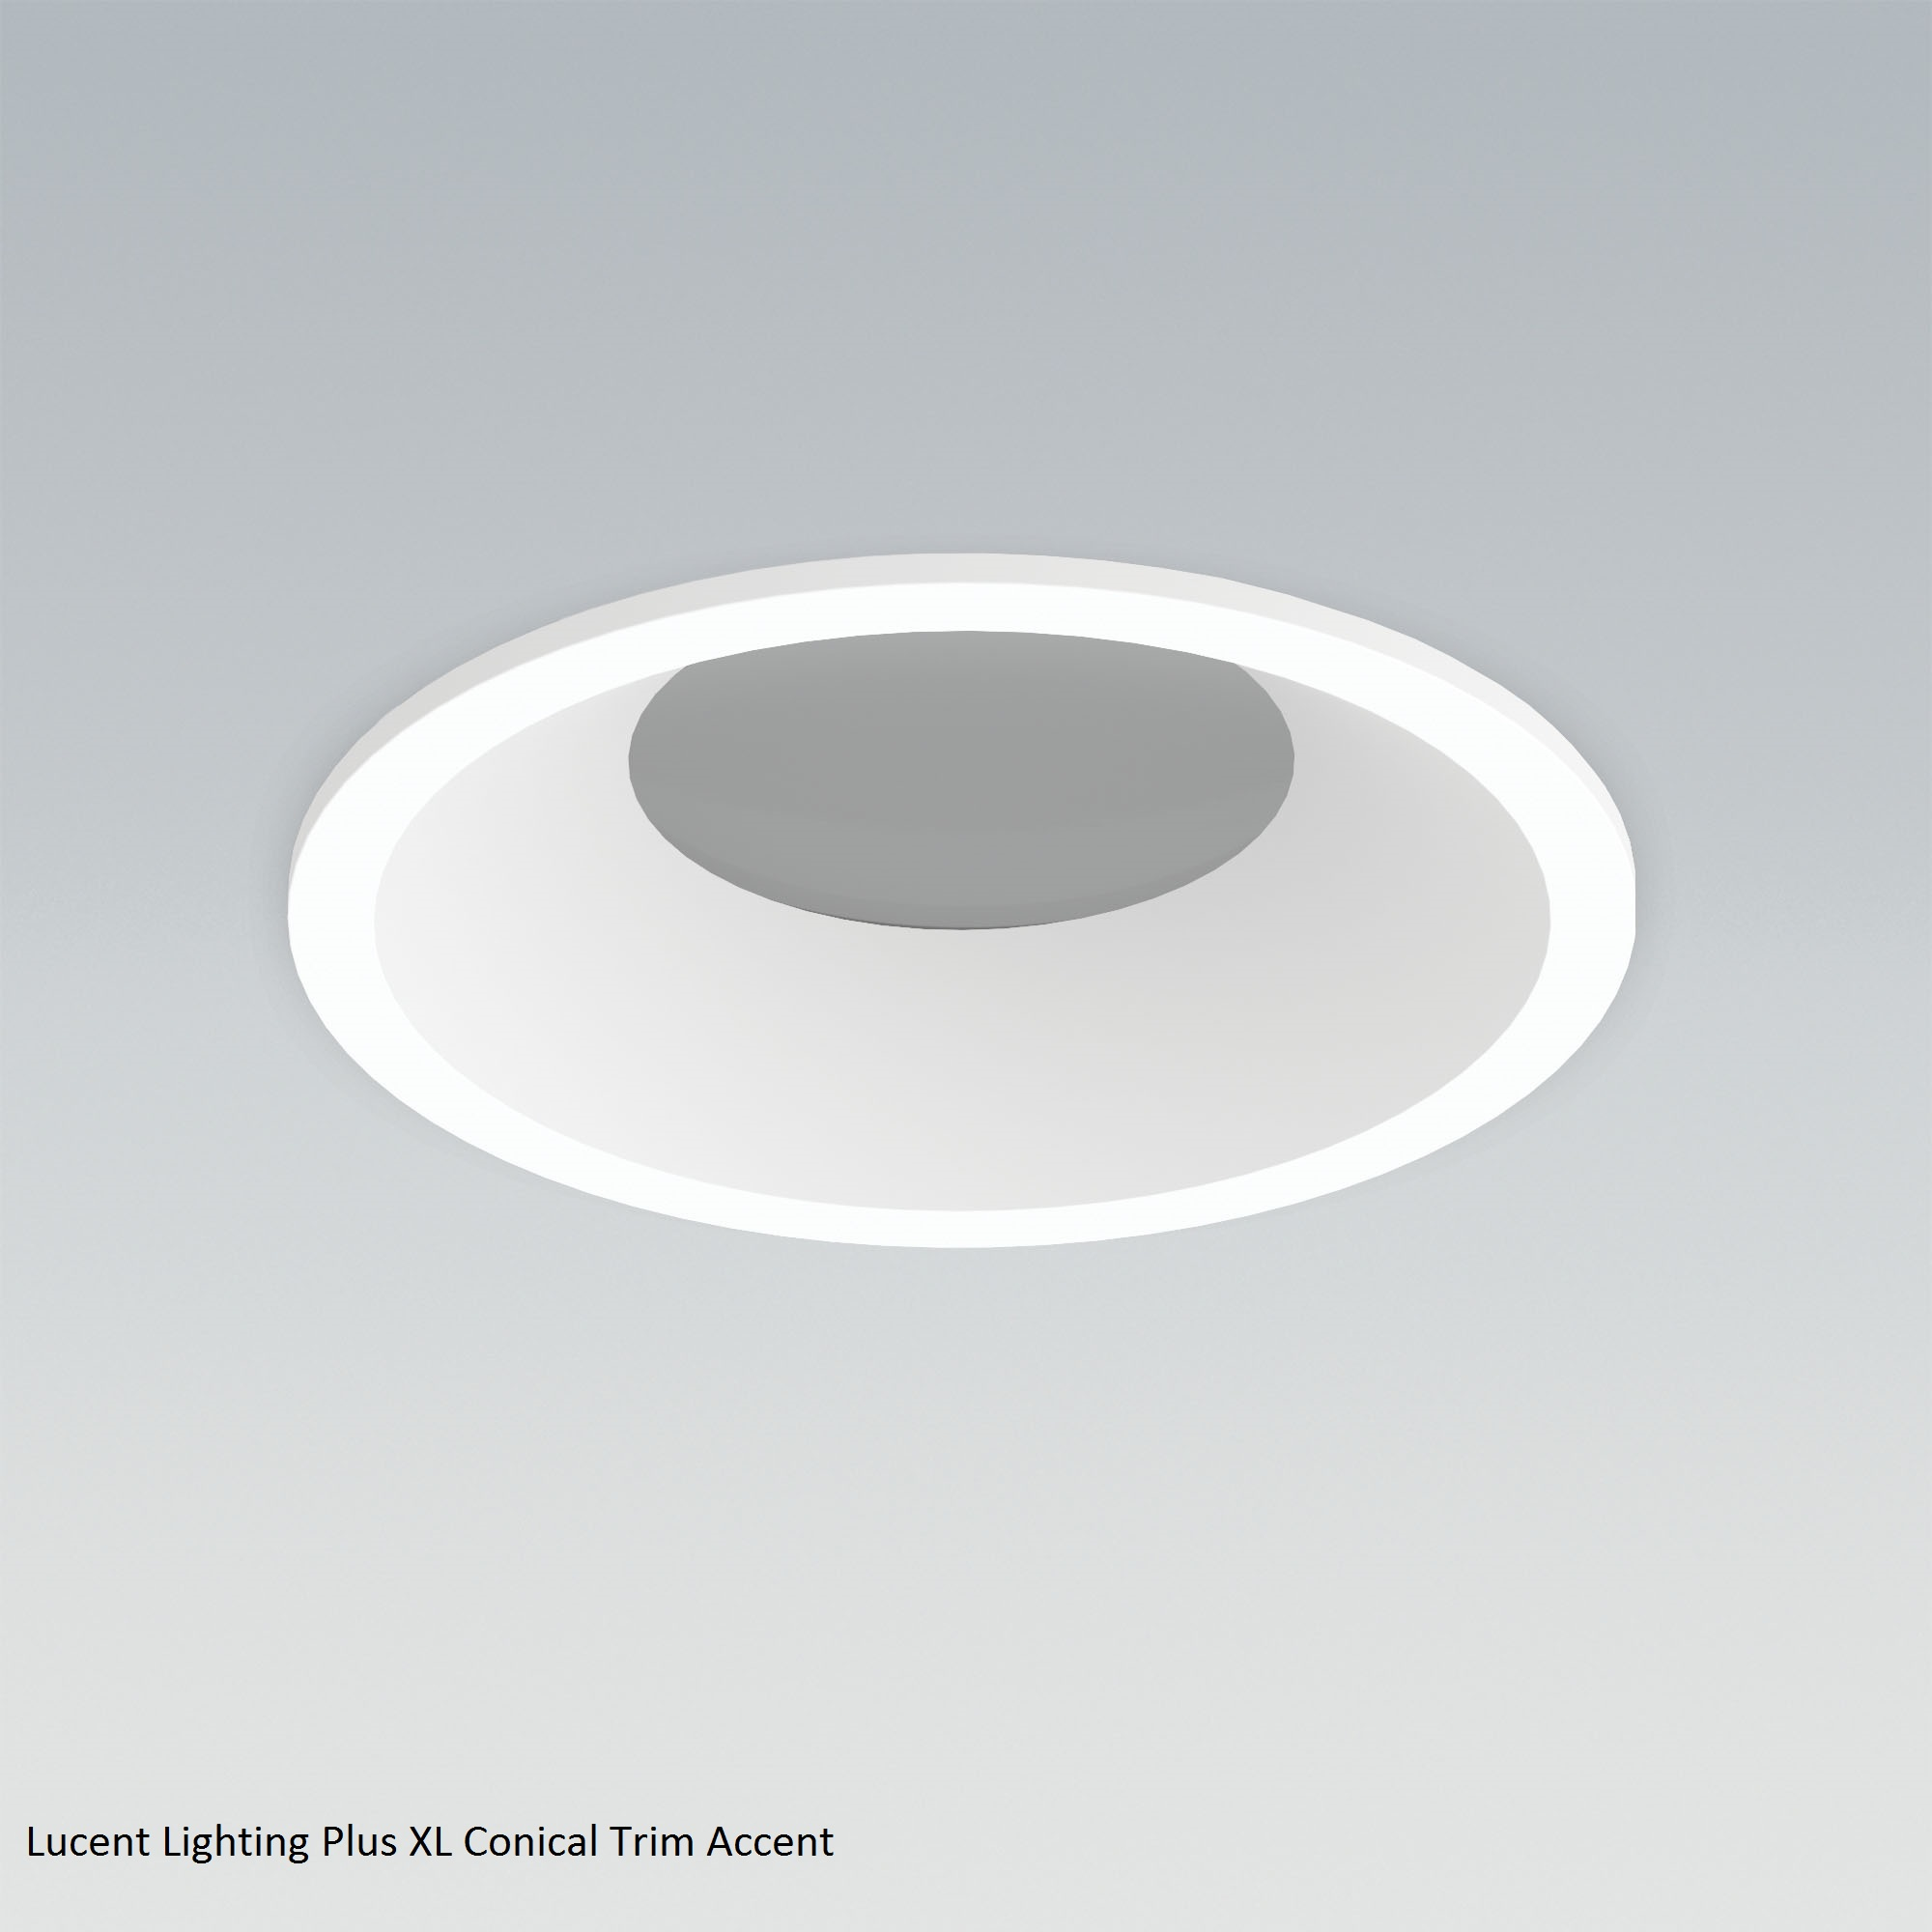 lucent-lighting-plus-xl-conical-trim-accent